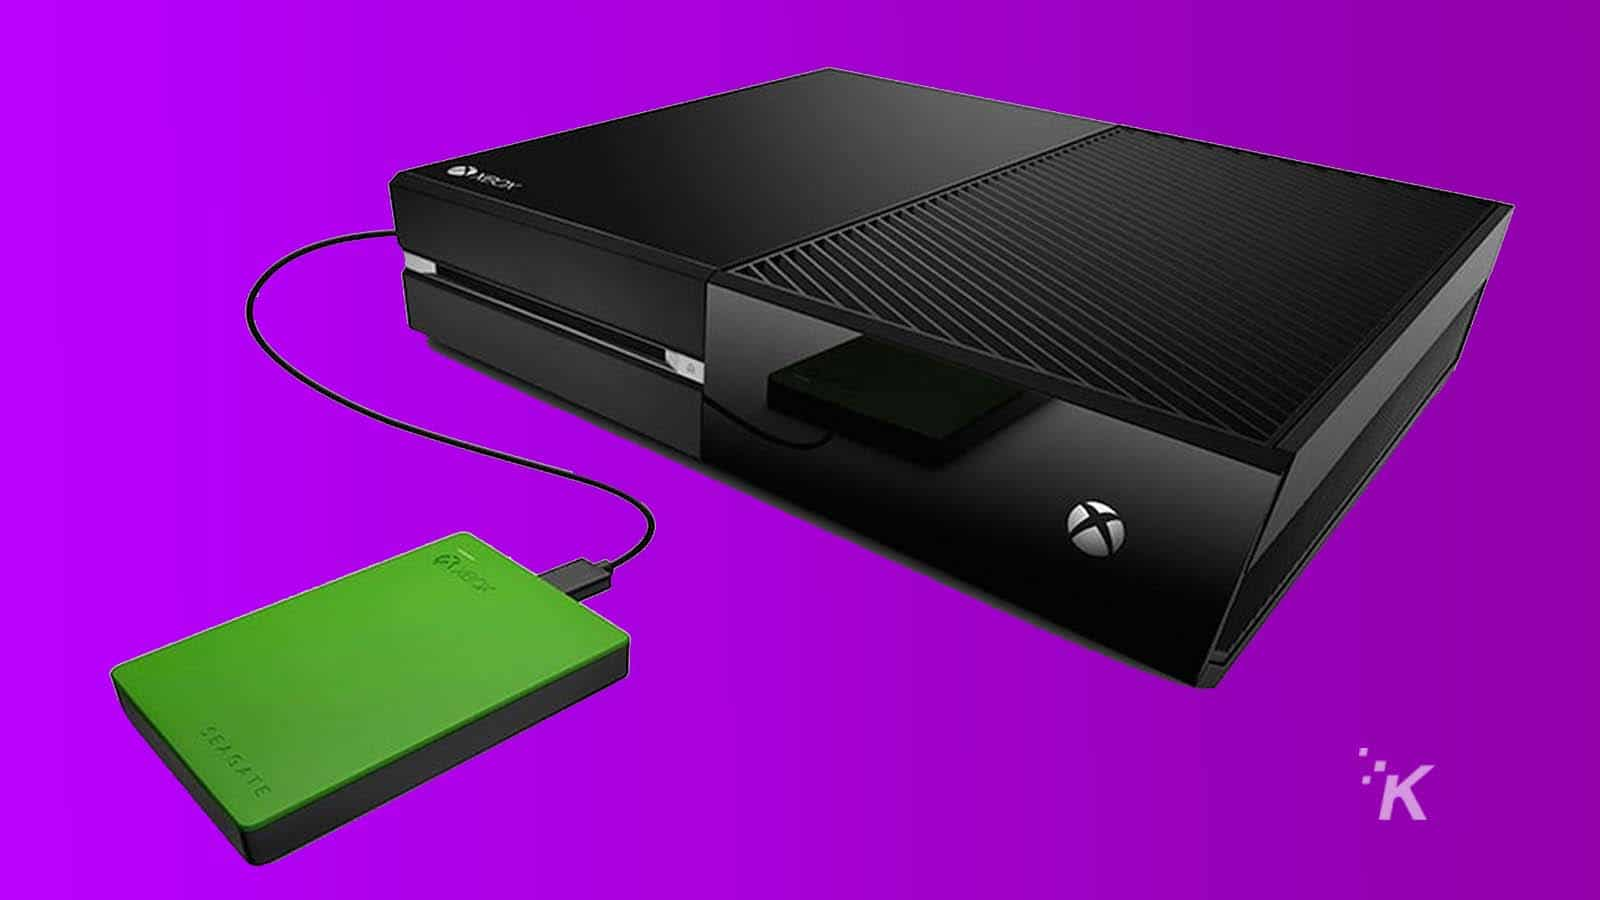 xbox one with an external hard drive